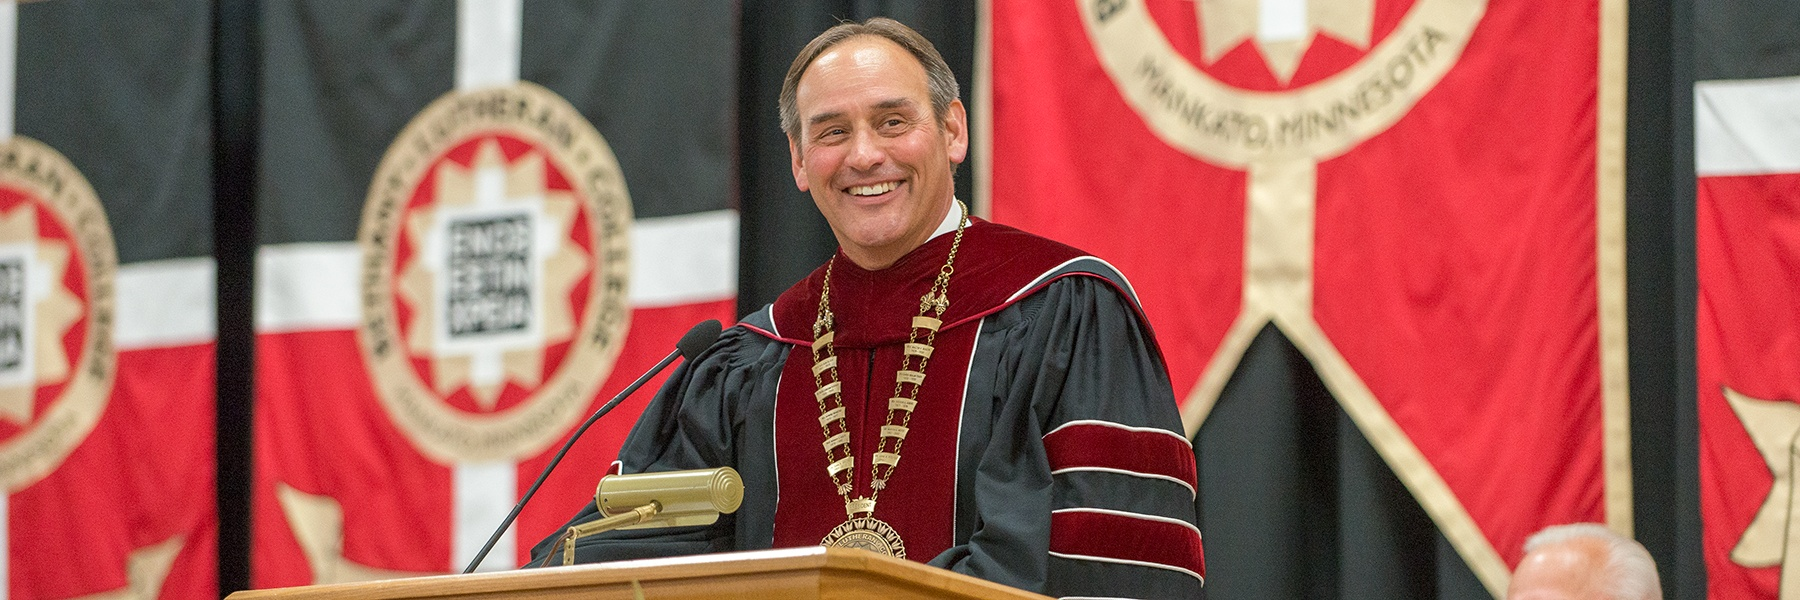 President Gene Pfeifer smiles at a podiium during the 2019 commencement ceremony.